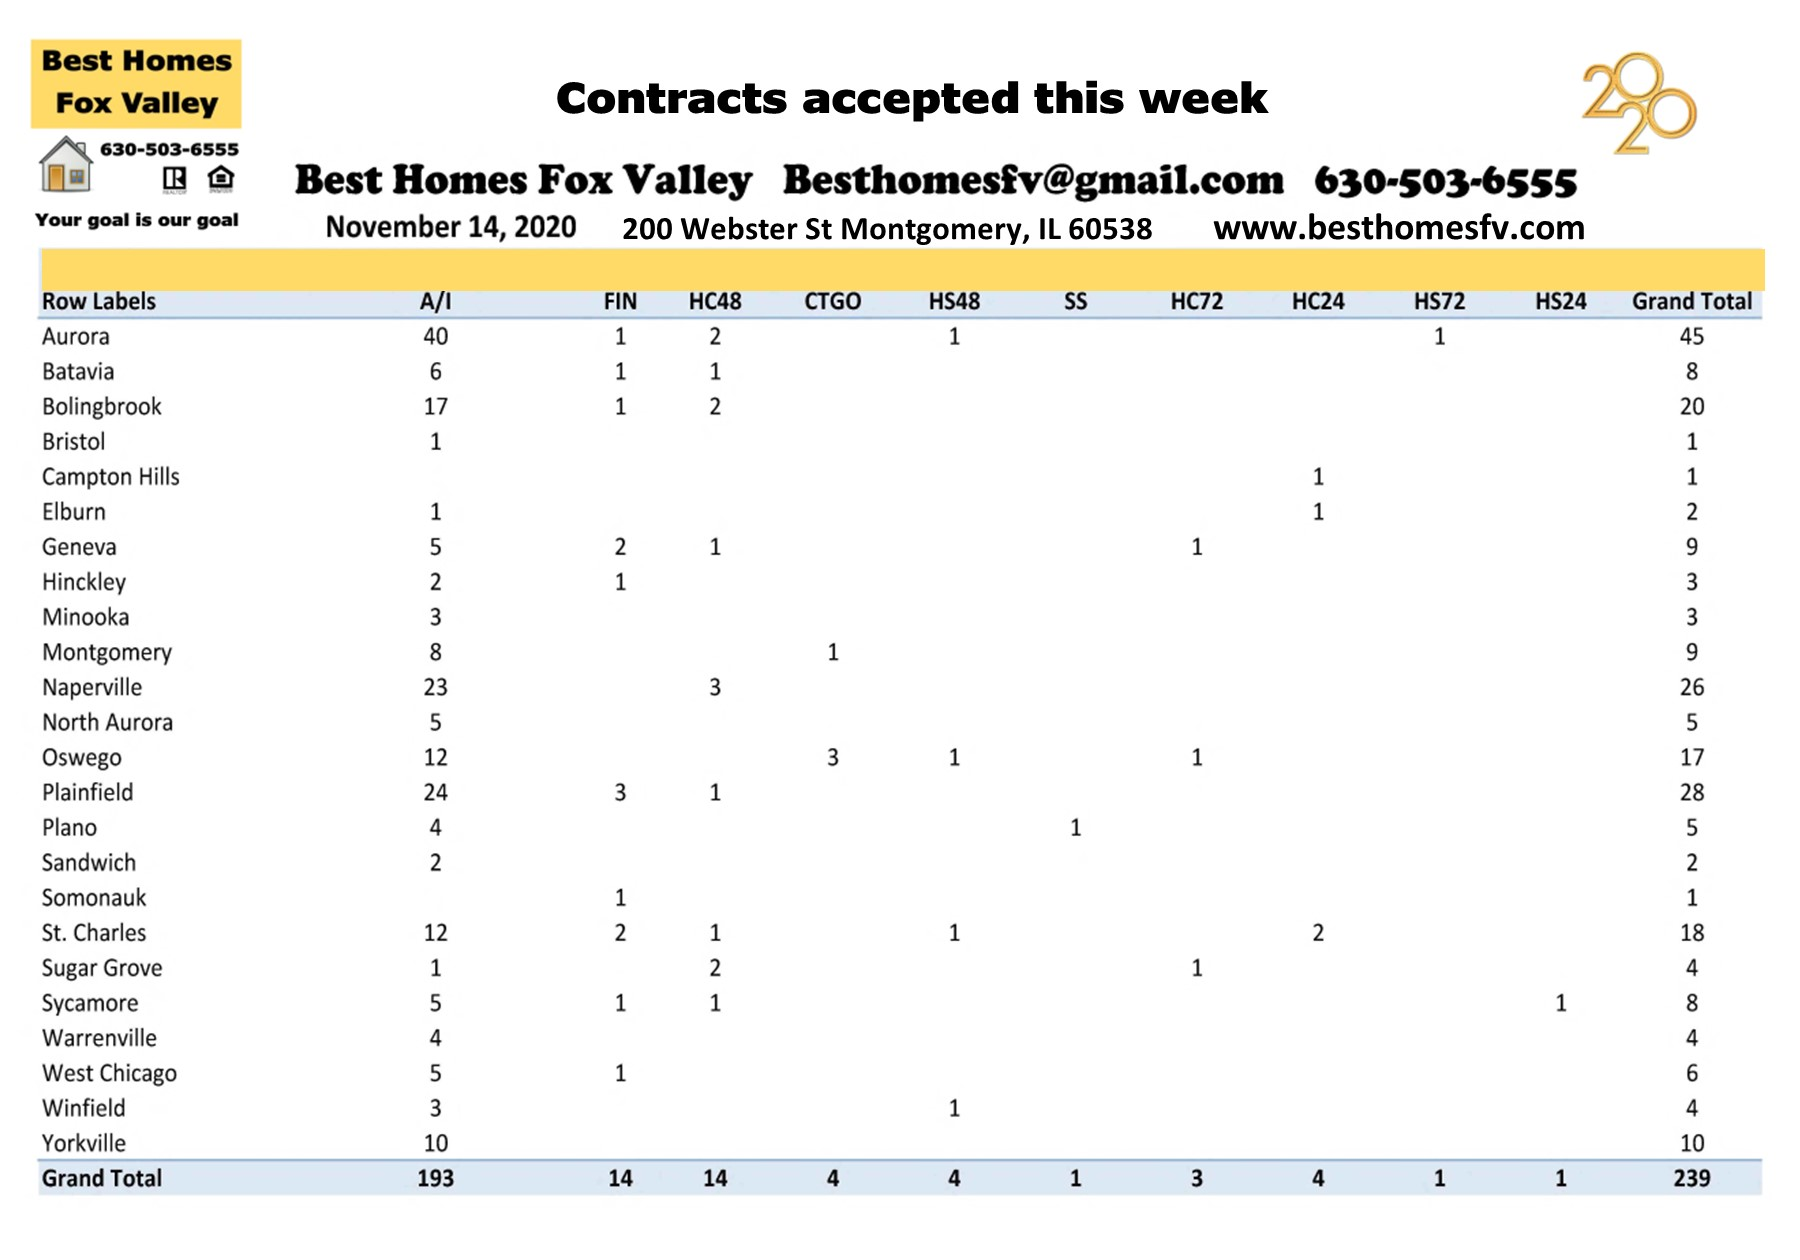 Market update Fox Valley week 46-Contracts accepted this week